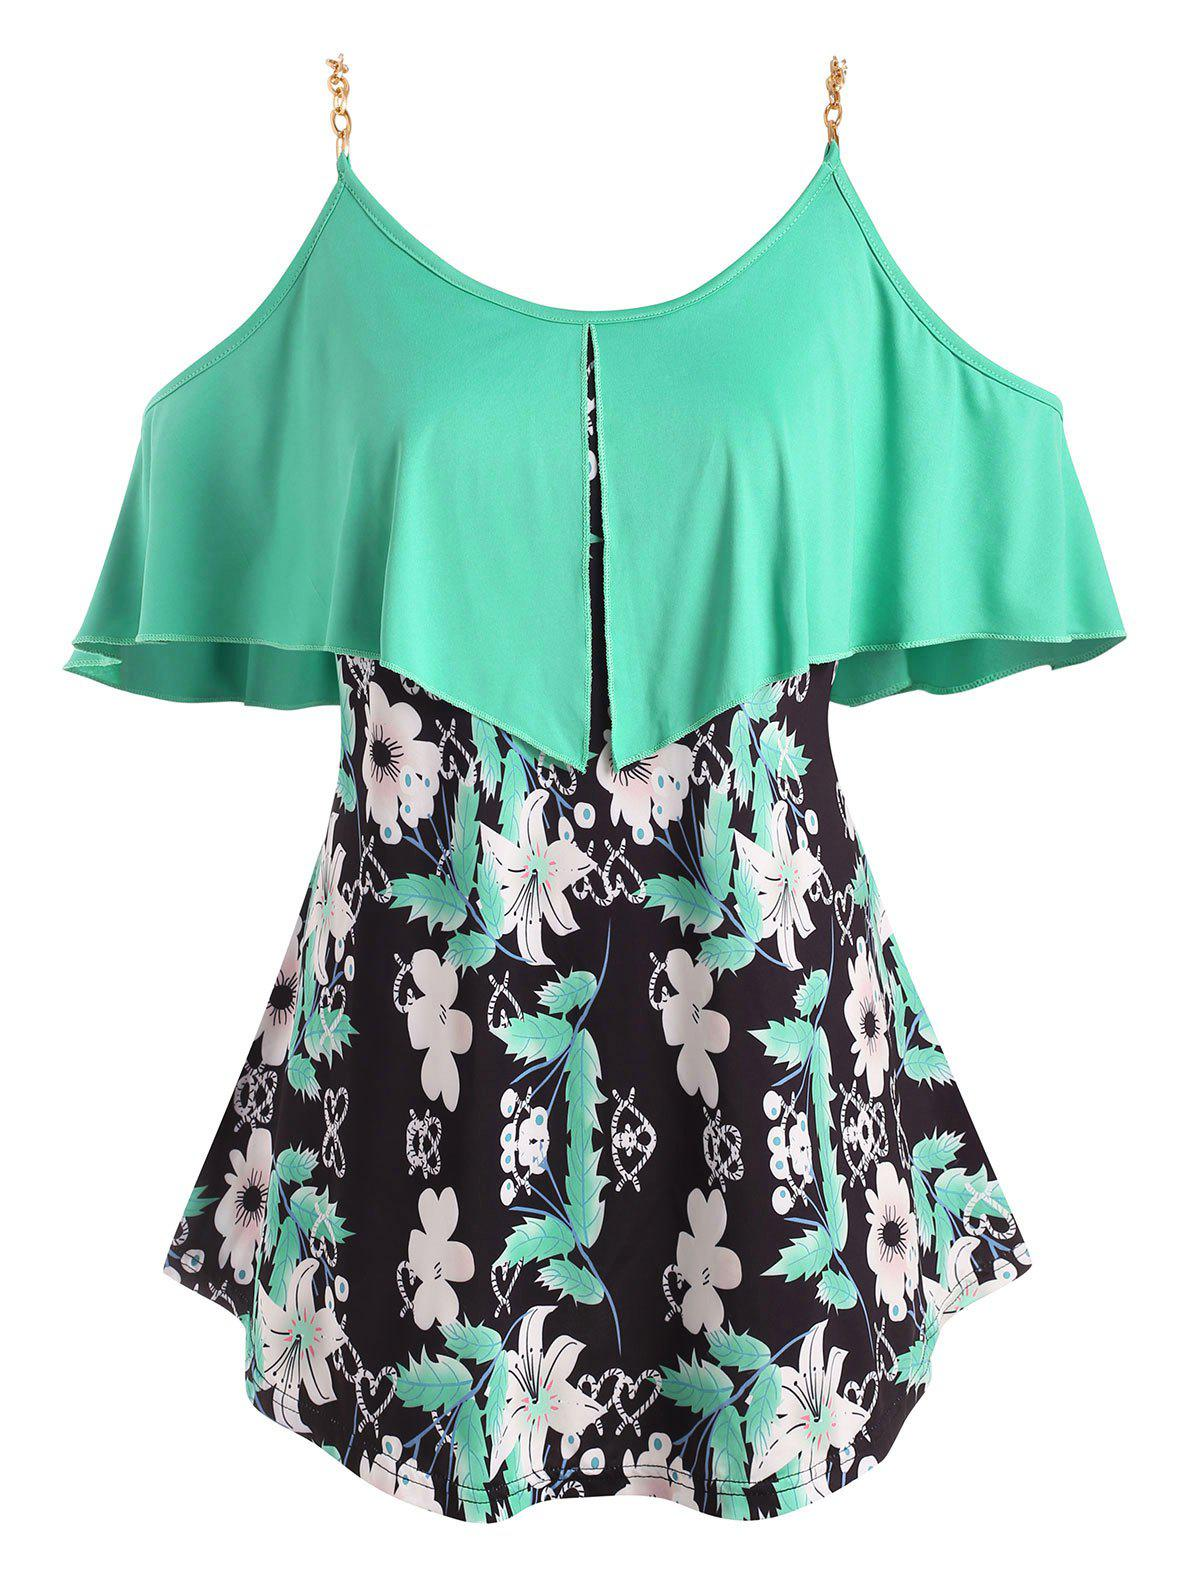 Foldover Metallic Ring Floral Open Shoulder Plus Size Top - GREEN 5X